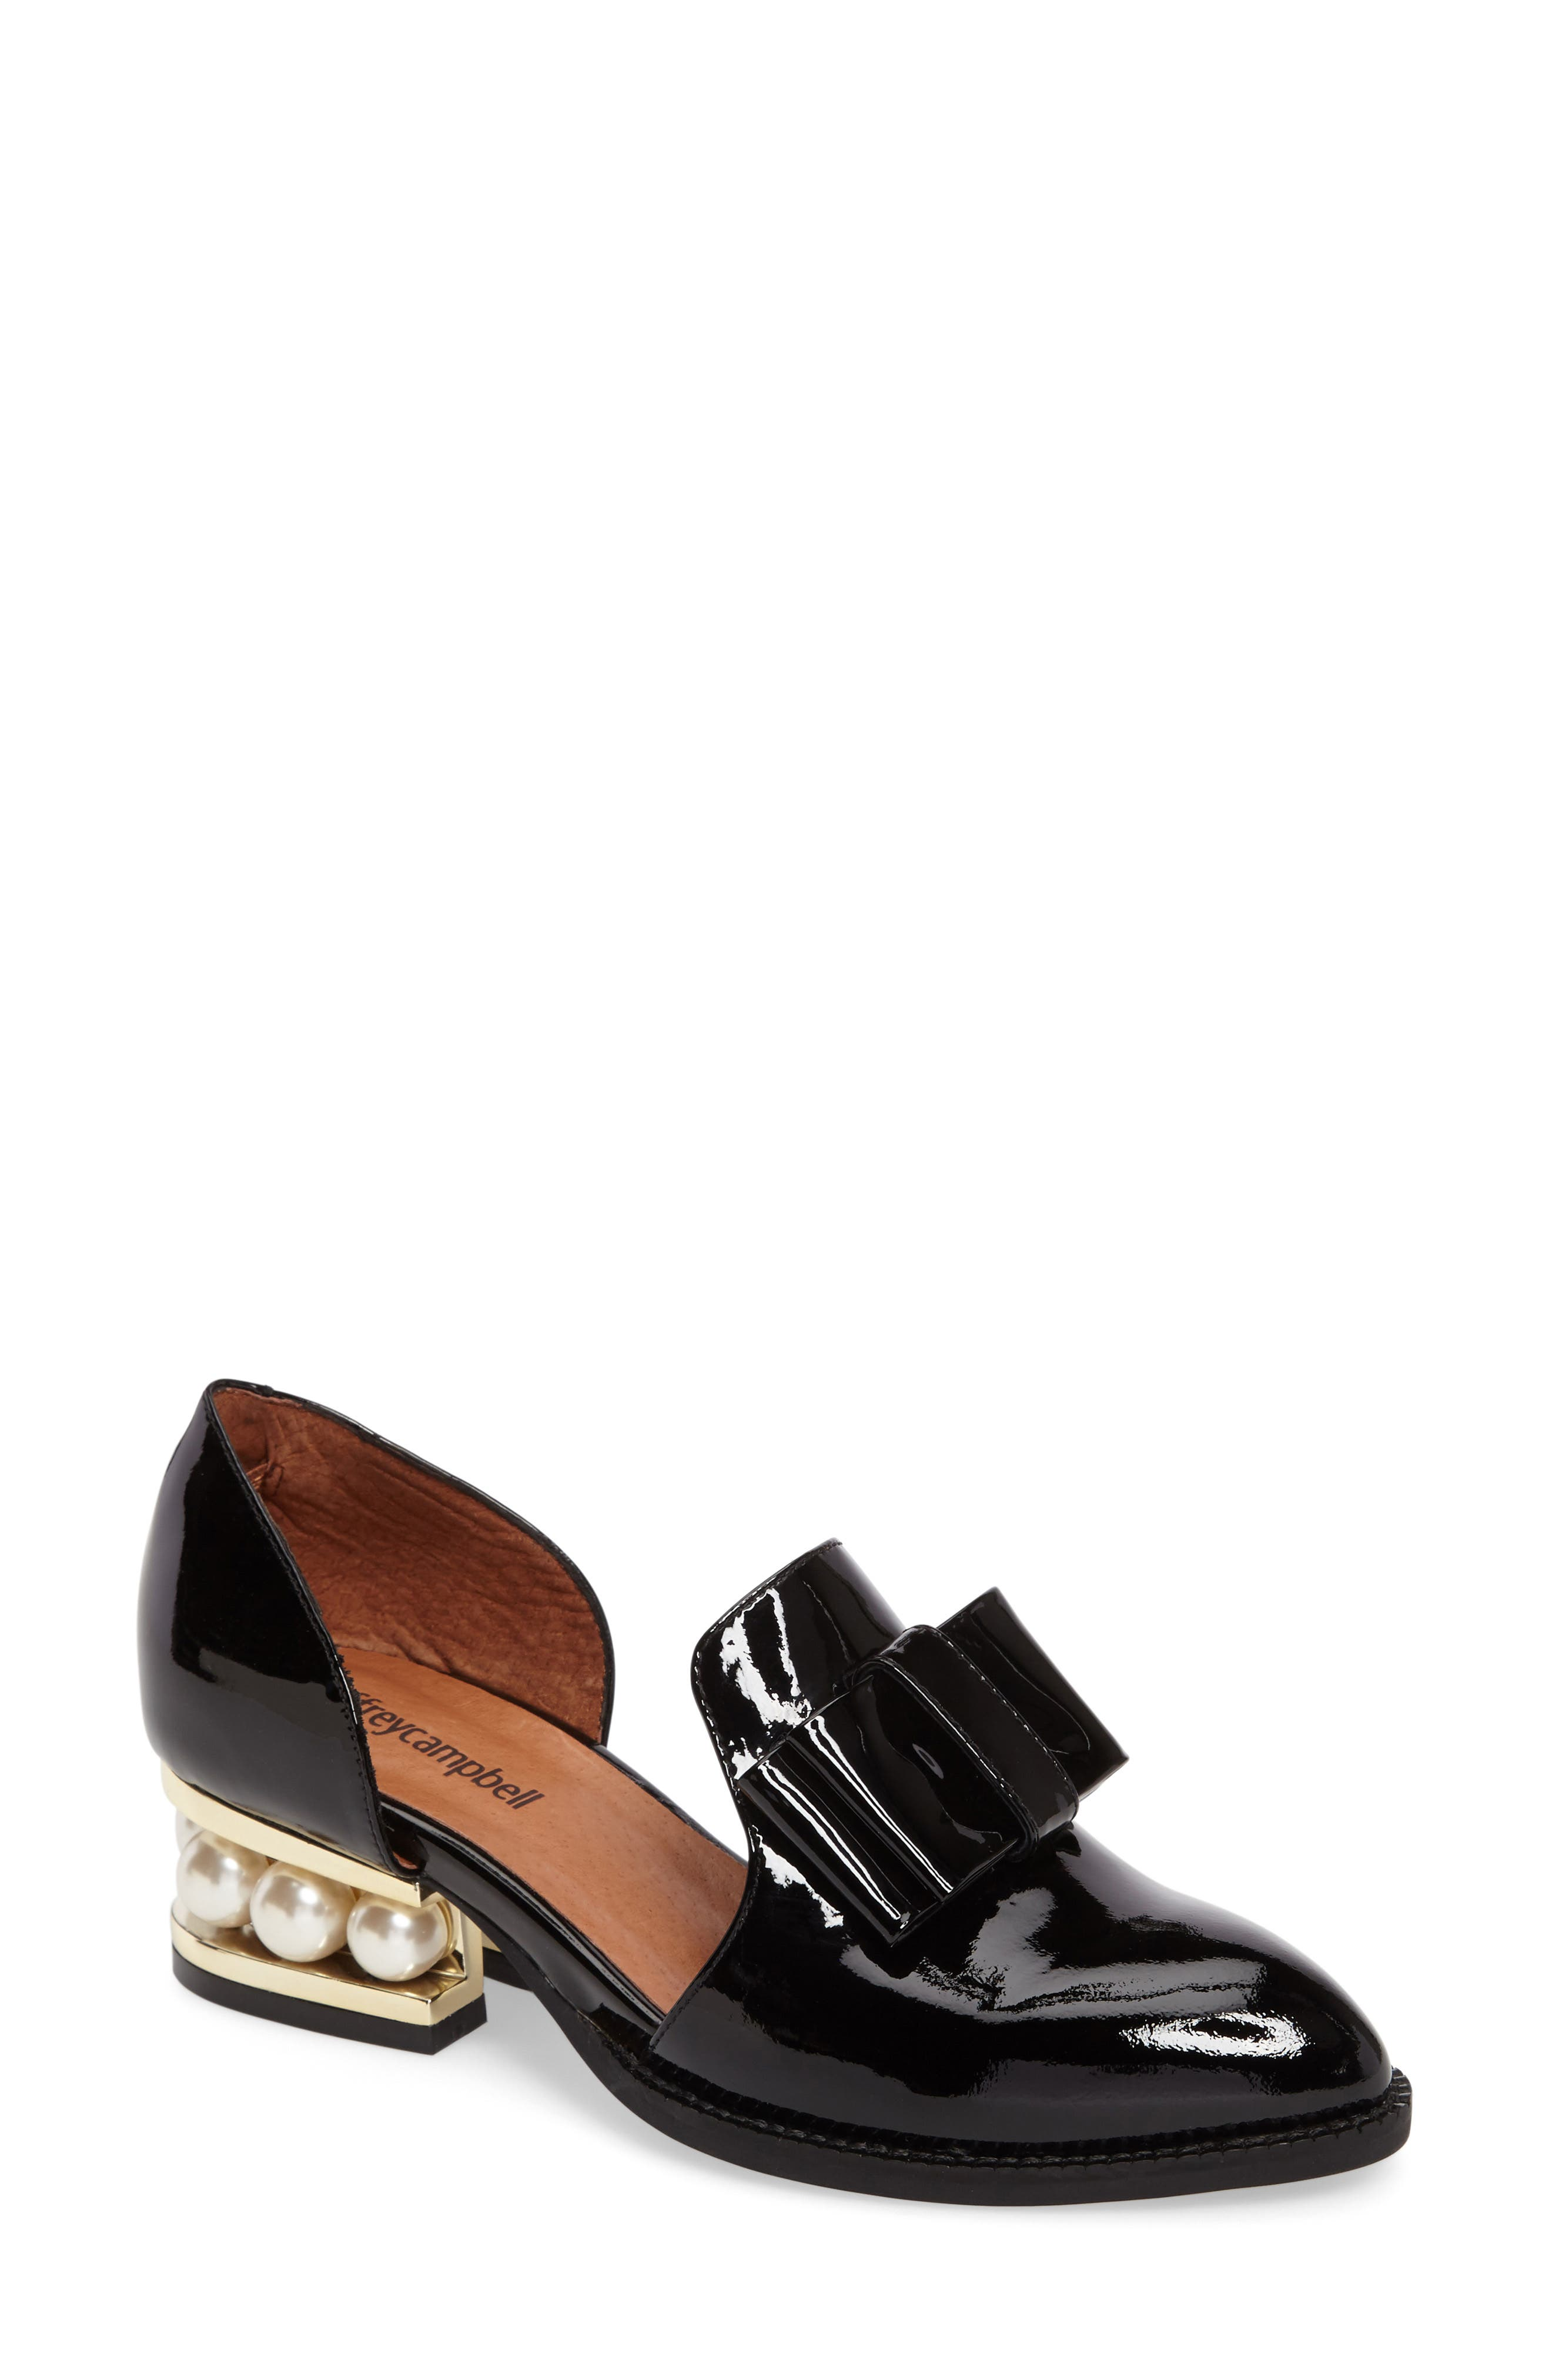 Alternate Image 1 Selected - Jeffrey Campbell Lawbow Loafer (Women)